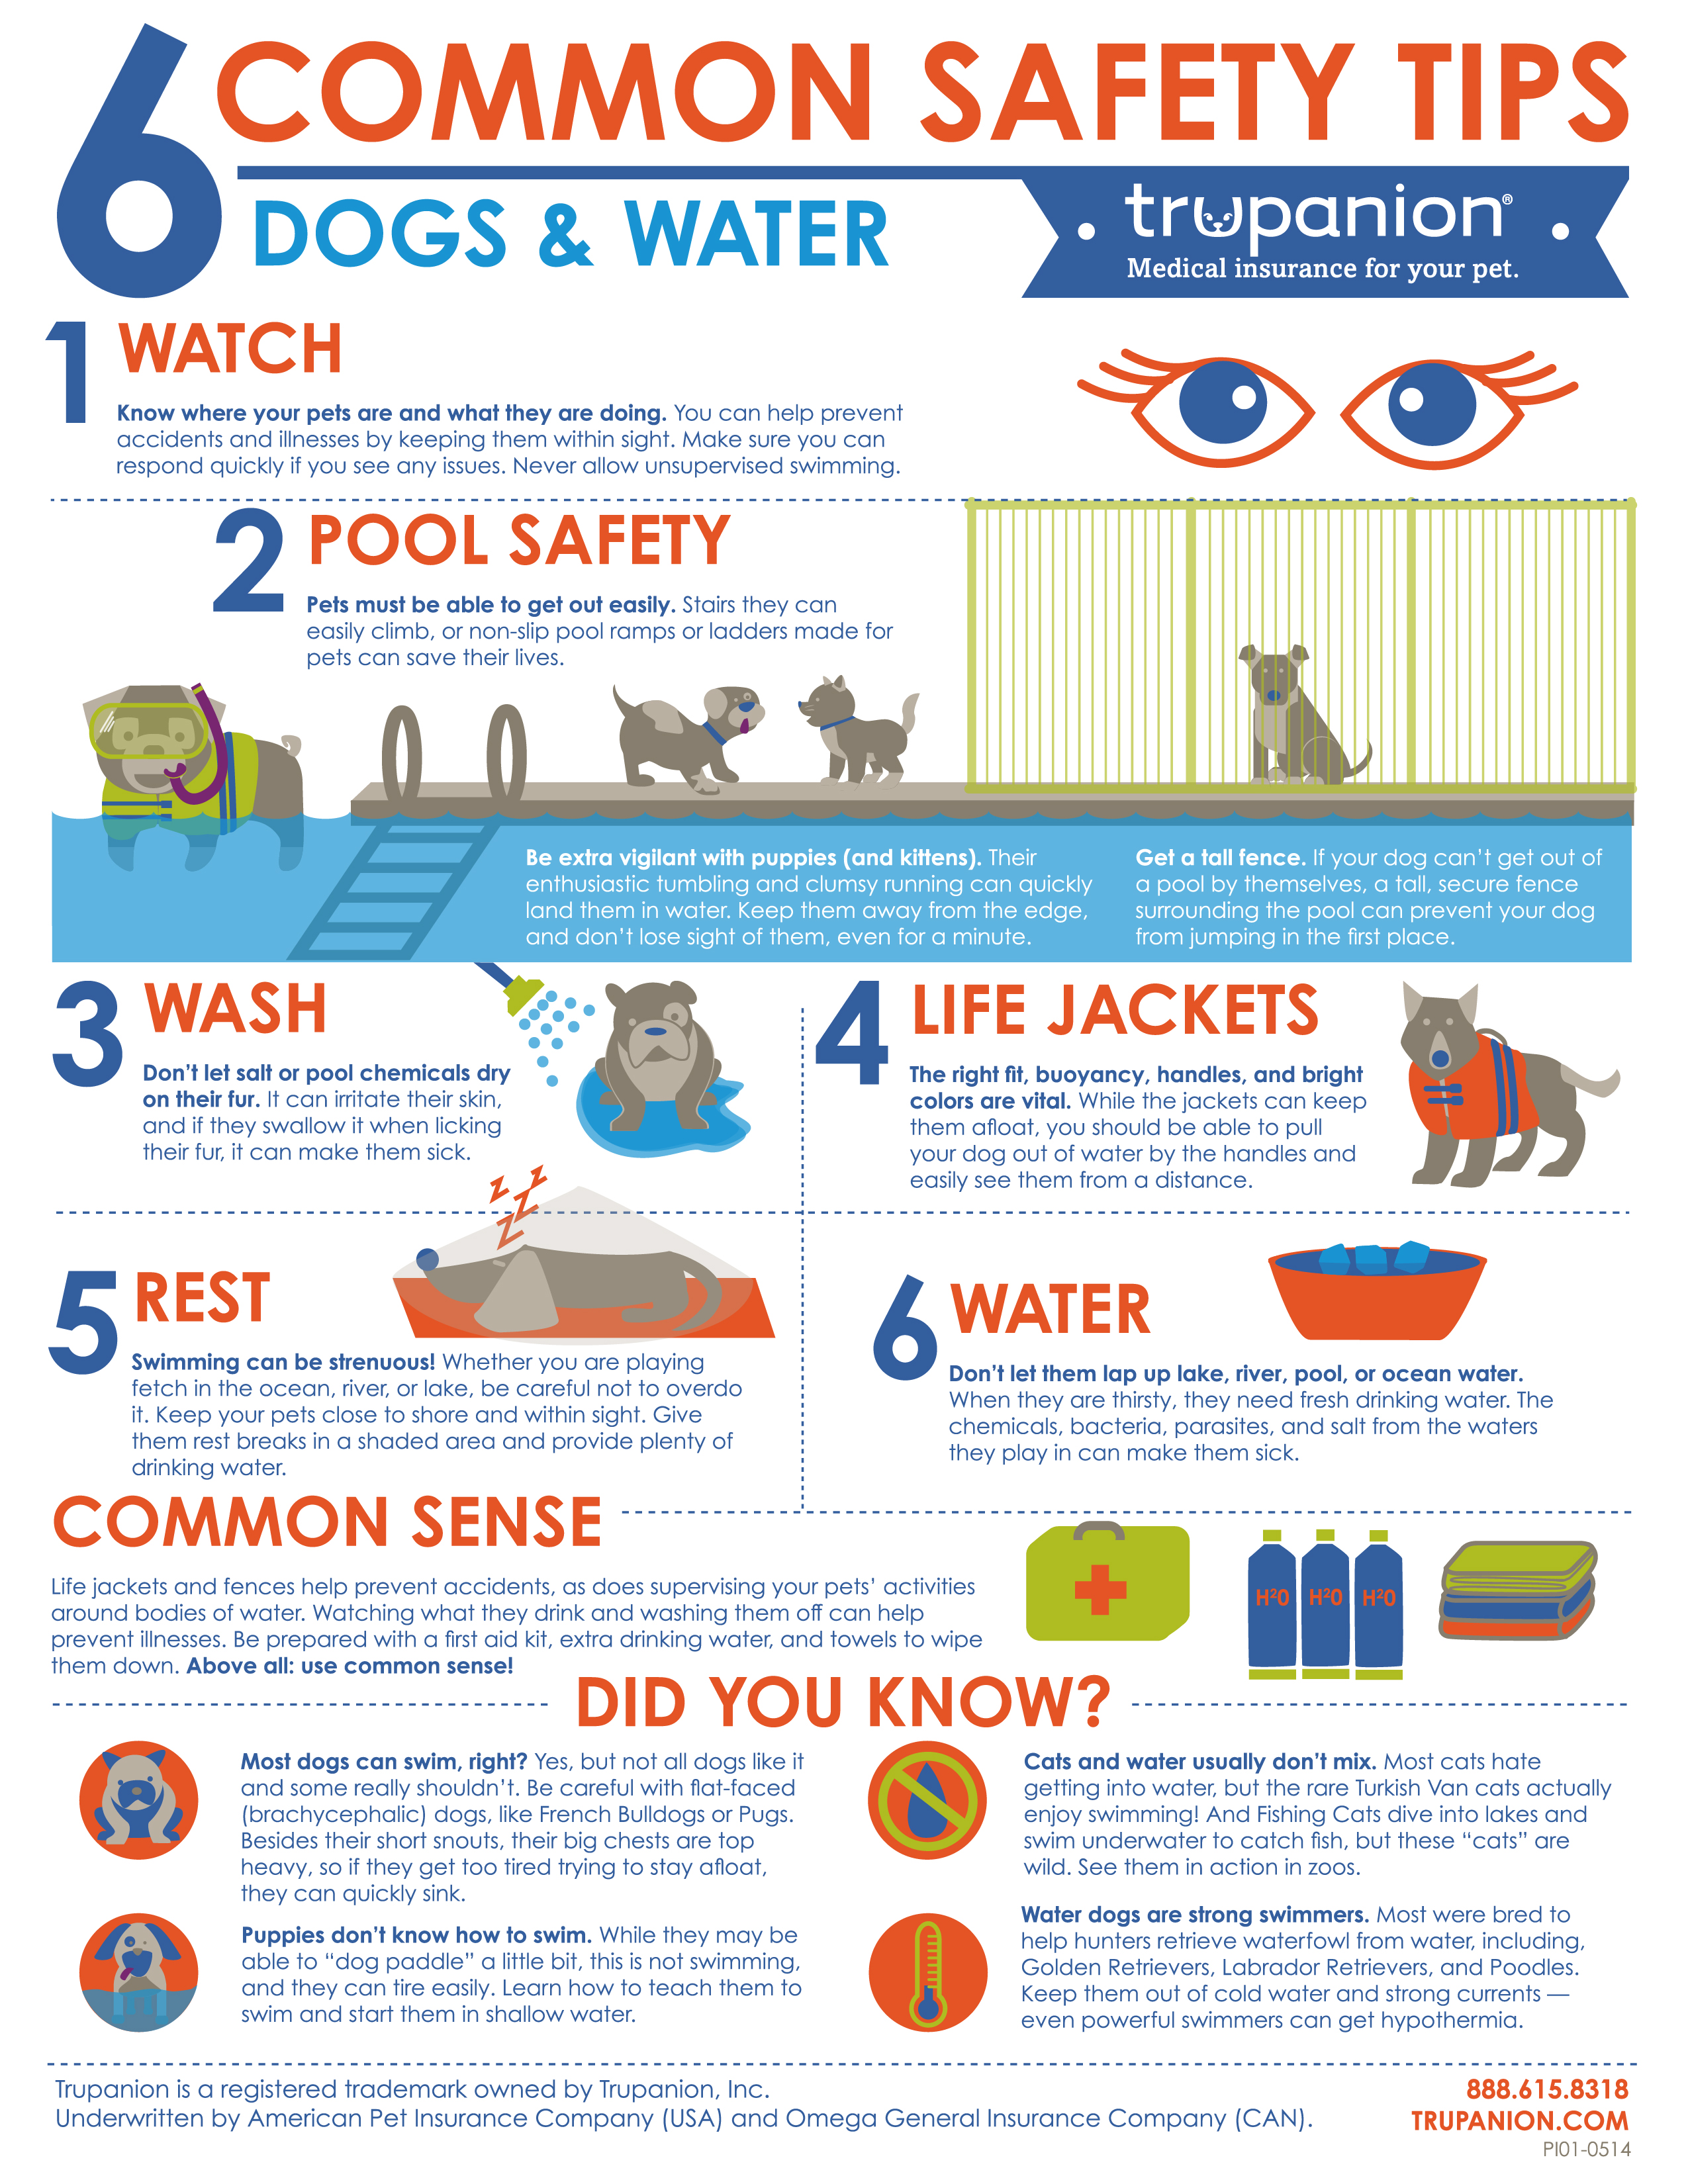 six common safety tips dogs and water infographic   water